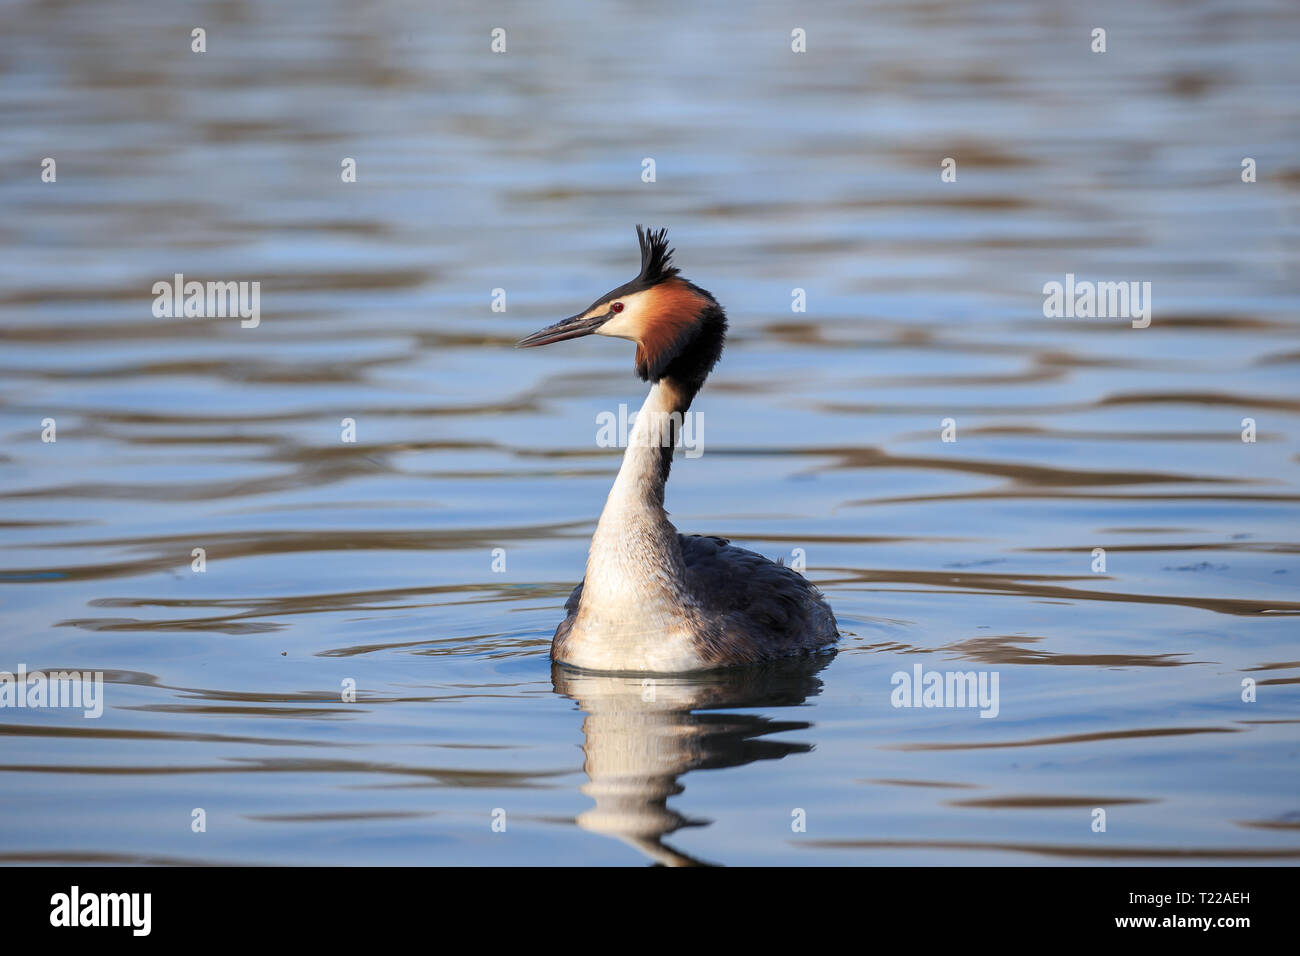 The great crested grebe is a member of the grebe family of water birds noted for its elaborate mating display. Stock Photo